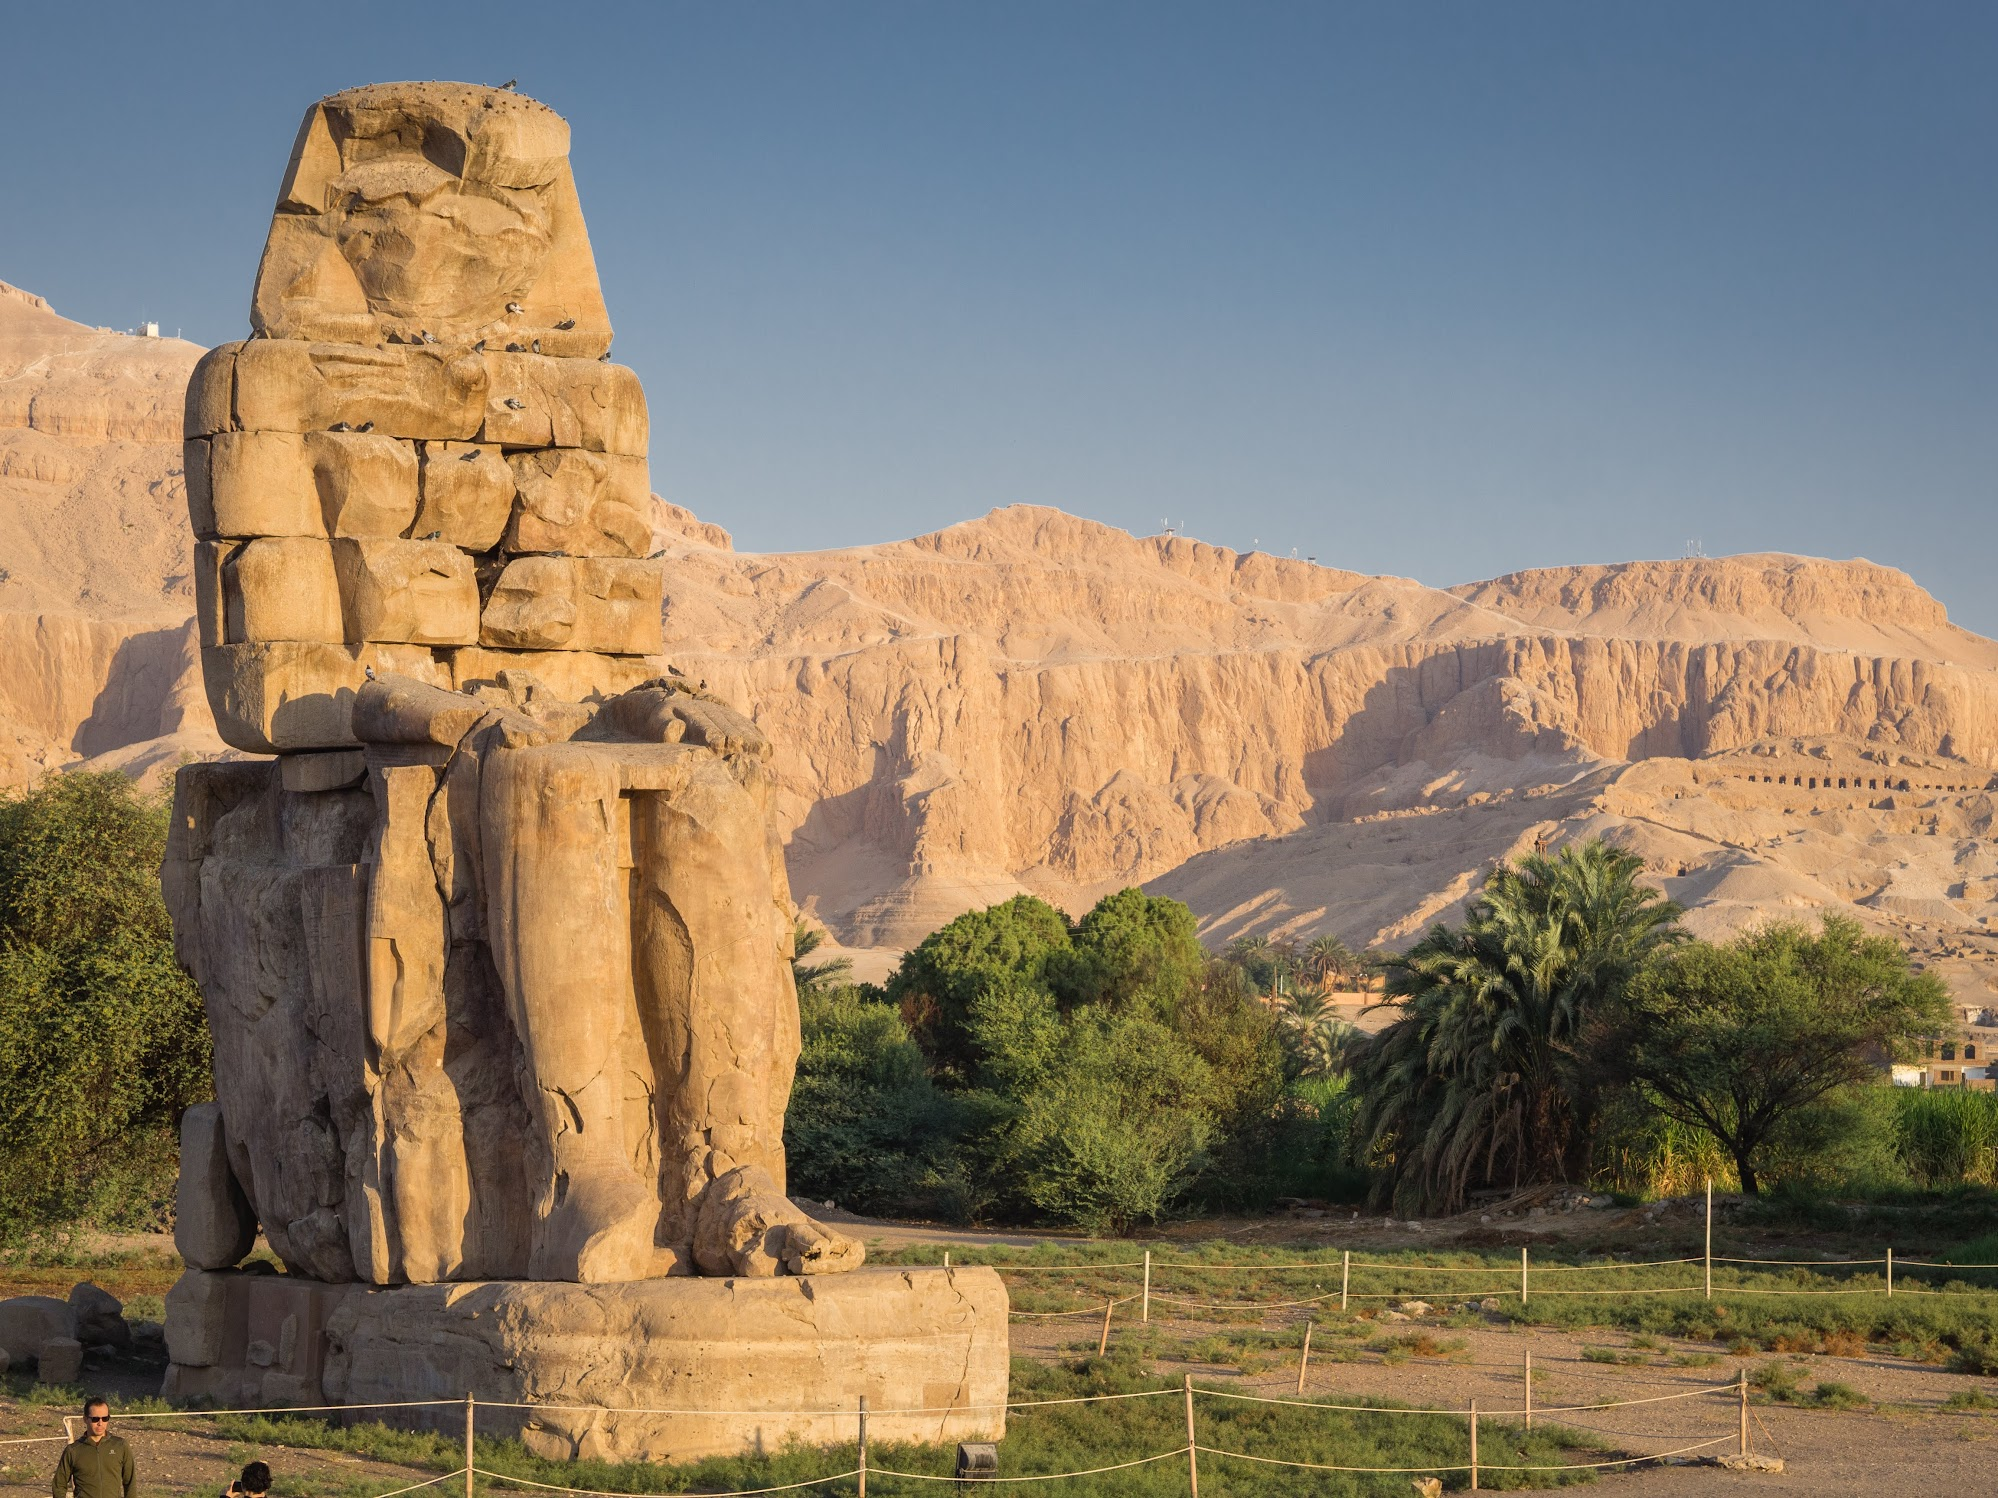 Colossi of Memnon against the desert mountain in Luxor